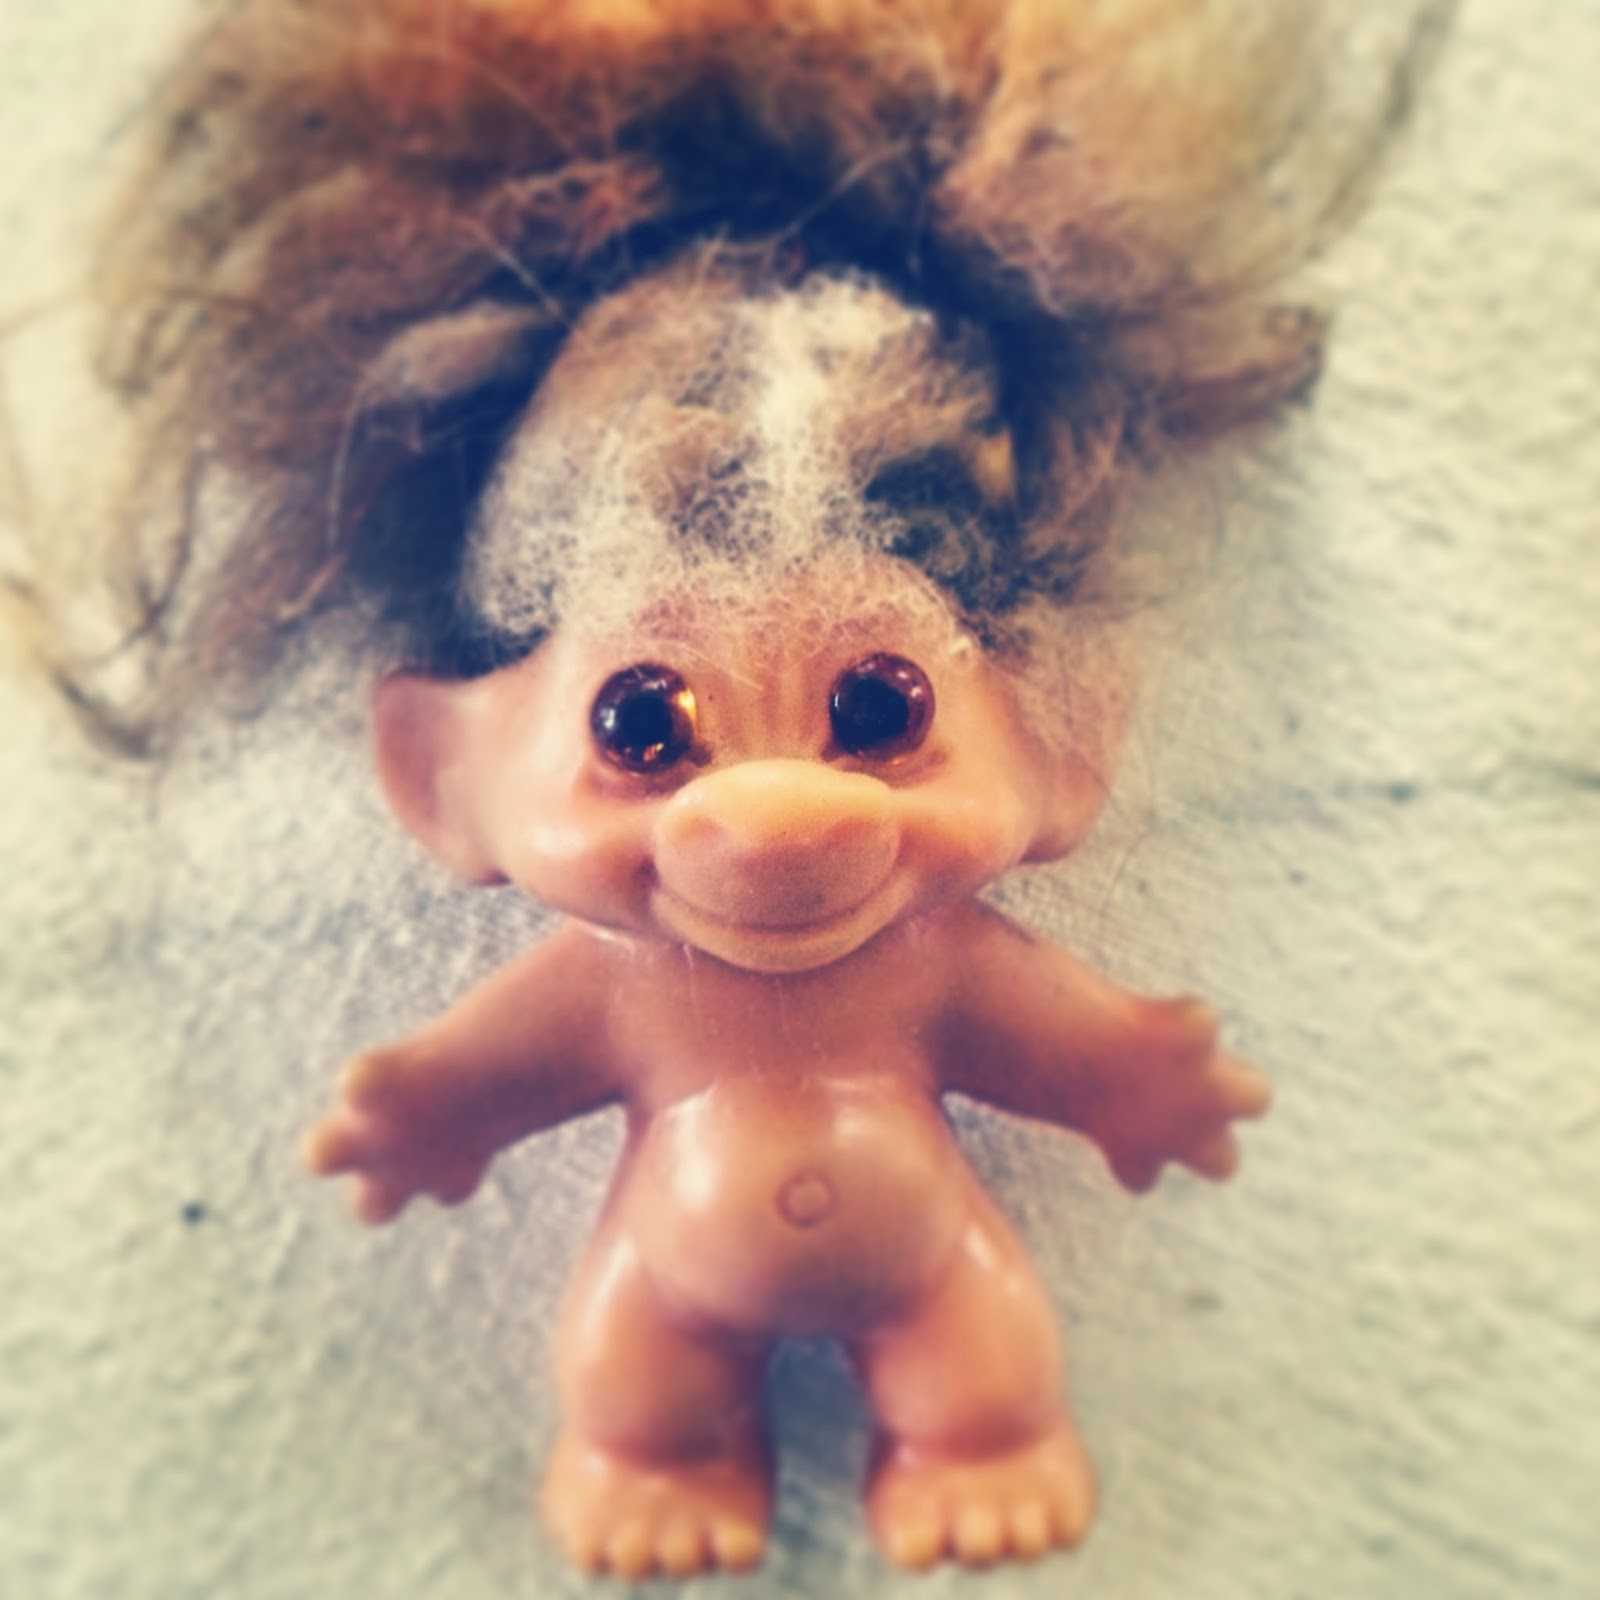 https://www.etsy.com/listing/186541835/authentic-1960s-dam-things-troll-dolls?ref=shop_home_active_5